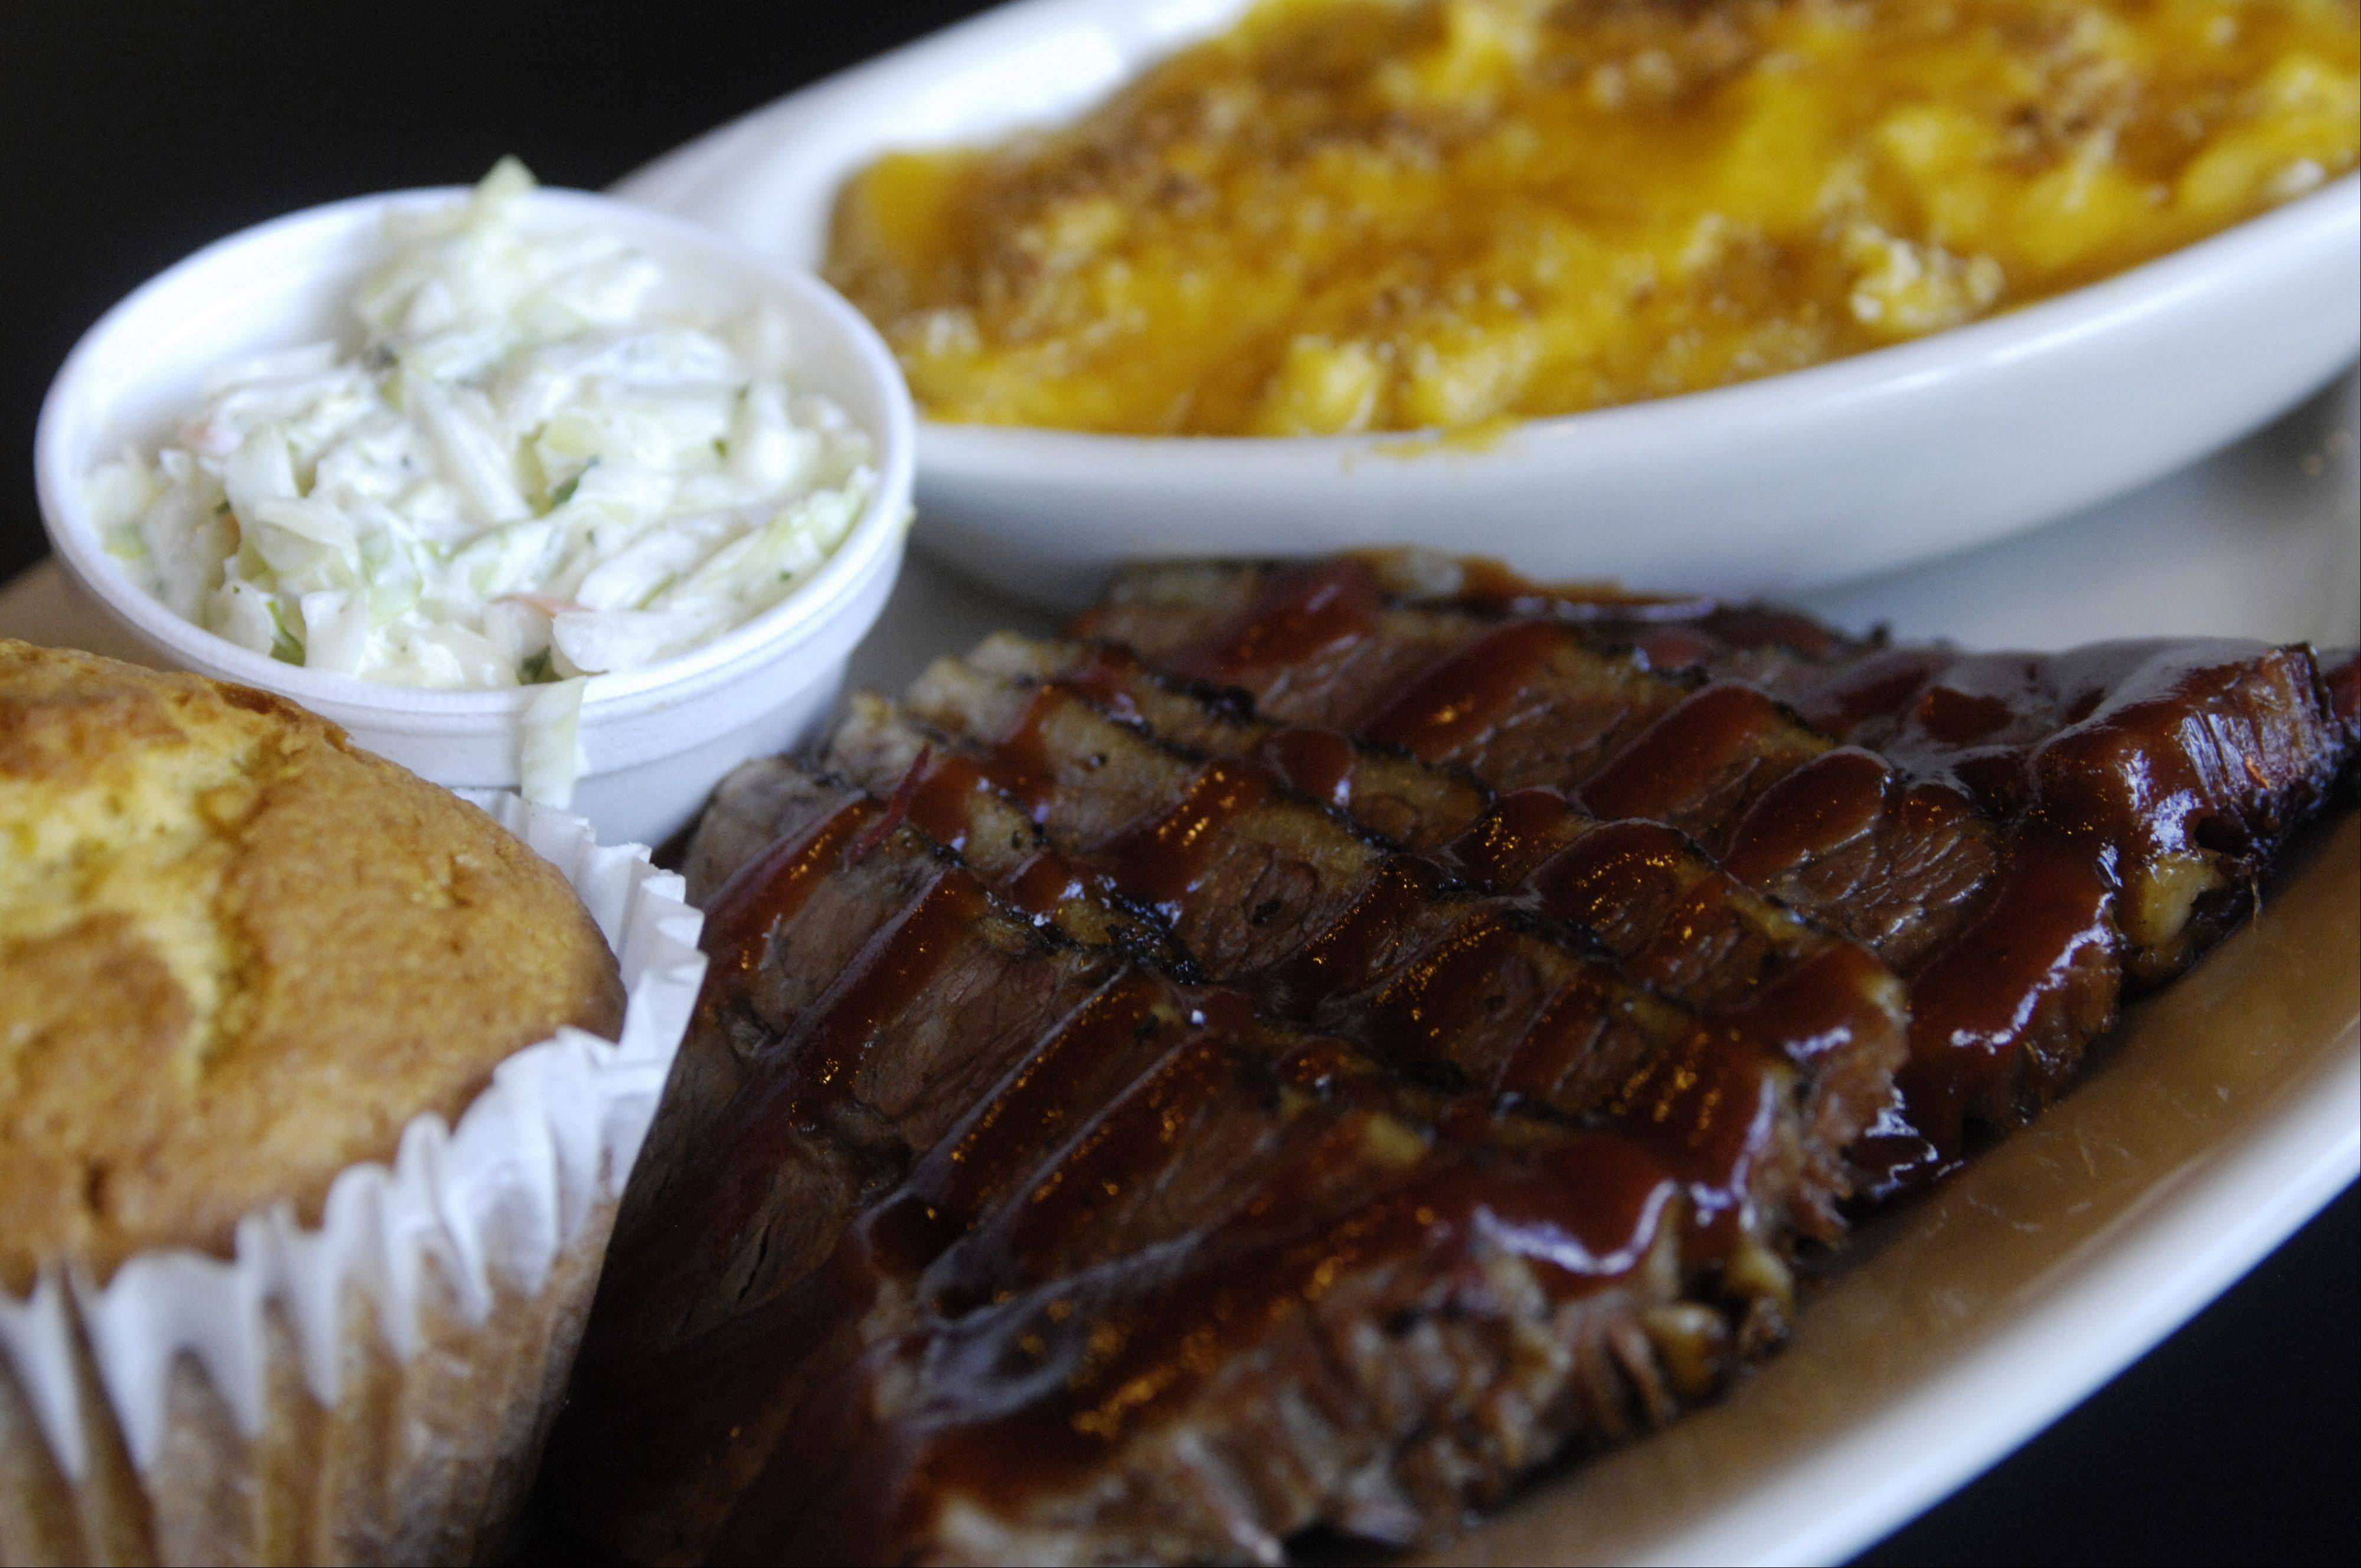 The beef brisket at JD's Q & Brew in Arlington Heights cooks for 12 to 14 hours.